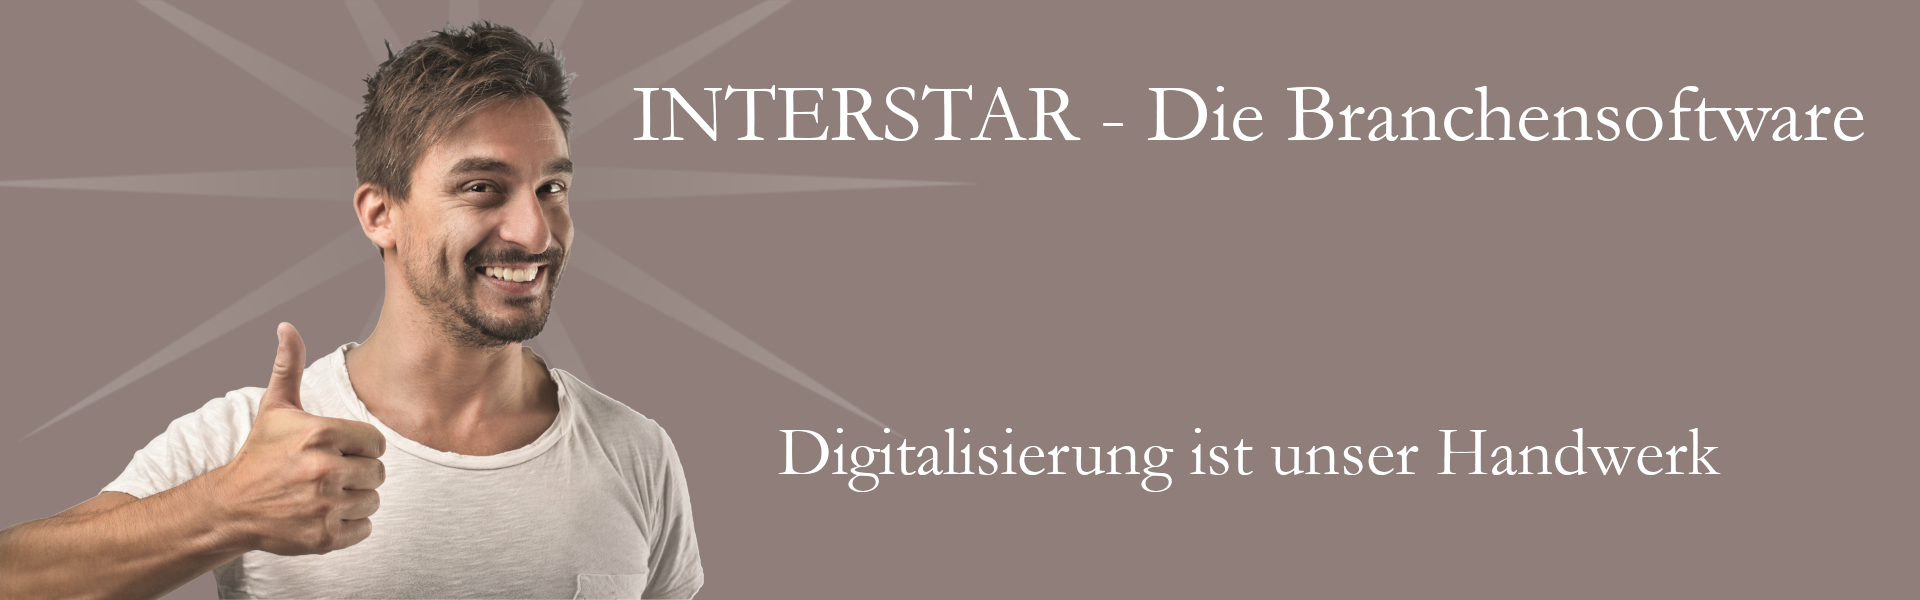 Interstar Banner